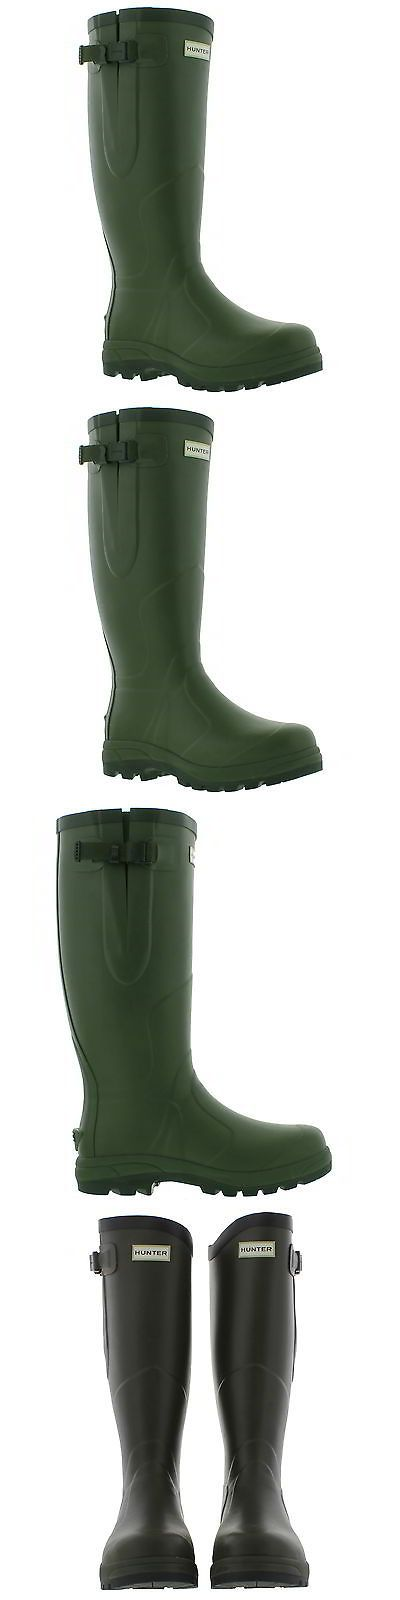 Mixed Items and Lots 63850: Hunter Original Balmoral Classic Wellington Mens Green Wellies Boots Size 6-12 -> BUY IT NOW ONLY: $80.49 on eBay!